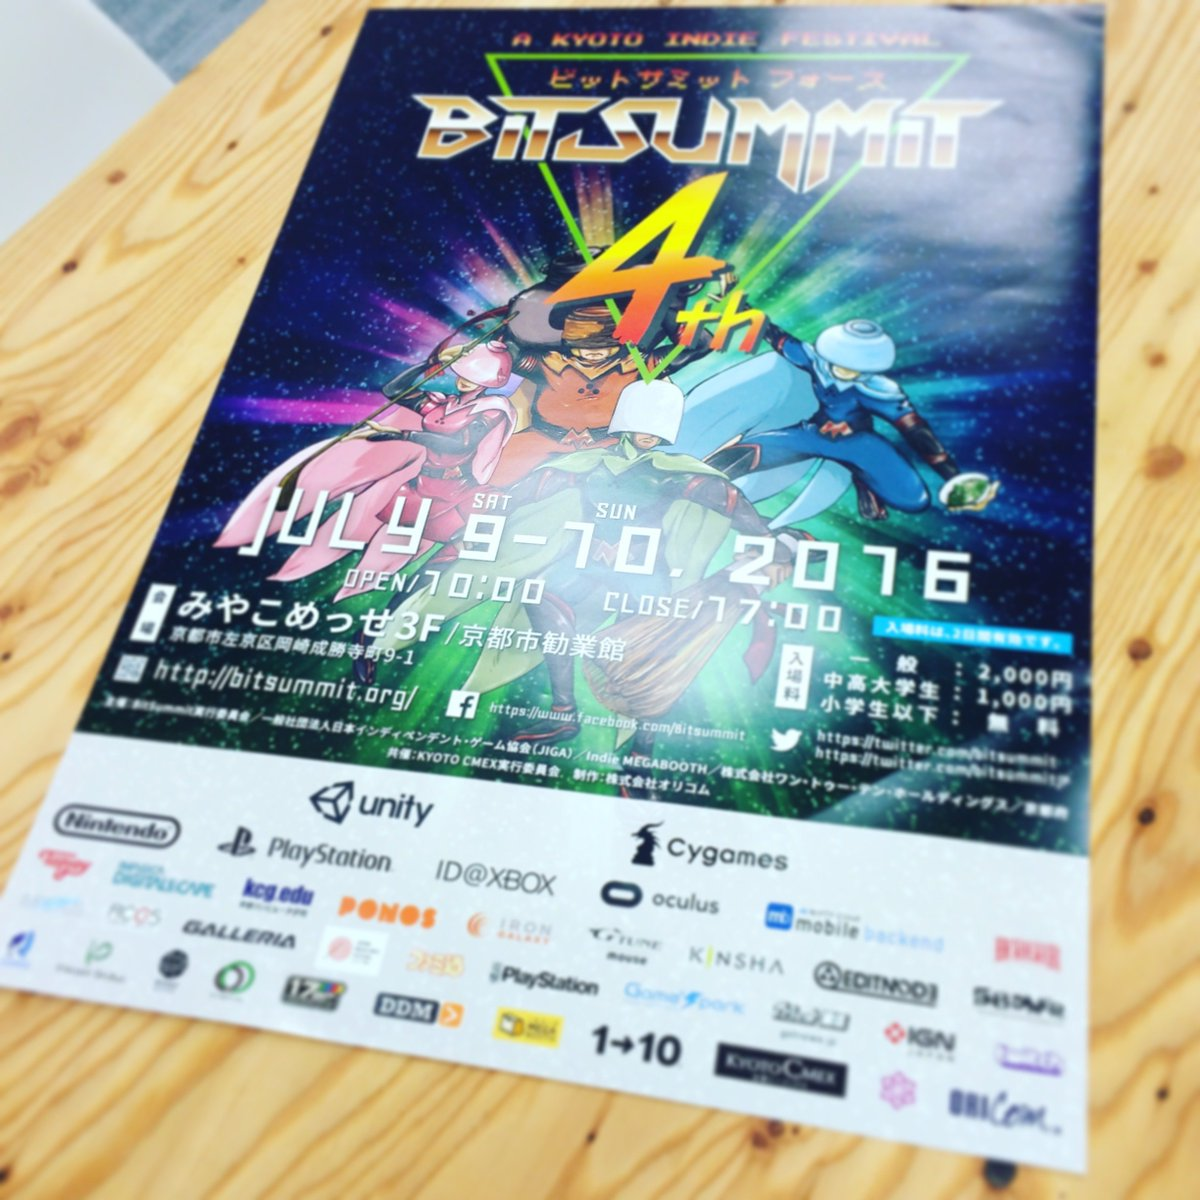 BitSummit is coming soon! Are you down with digital Kyoto? https://t.co/BHelfnV6Eo https://t.co/FUmyUQ55jU